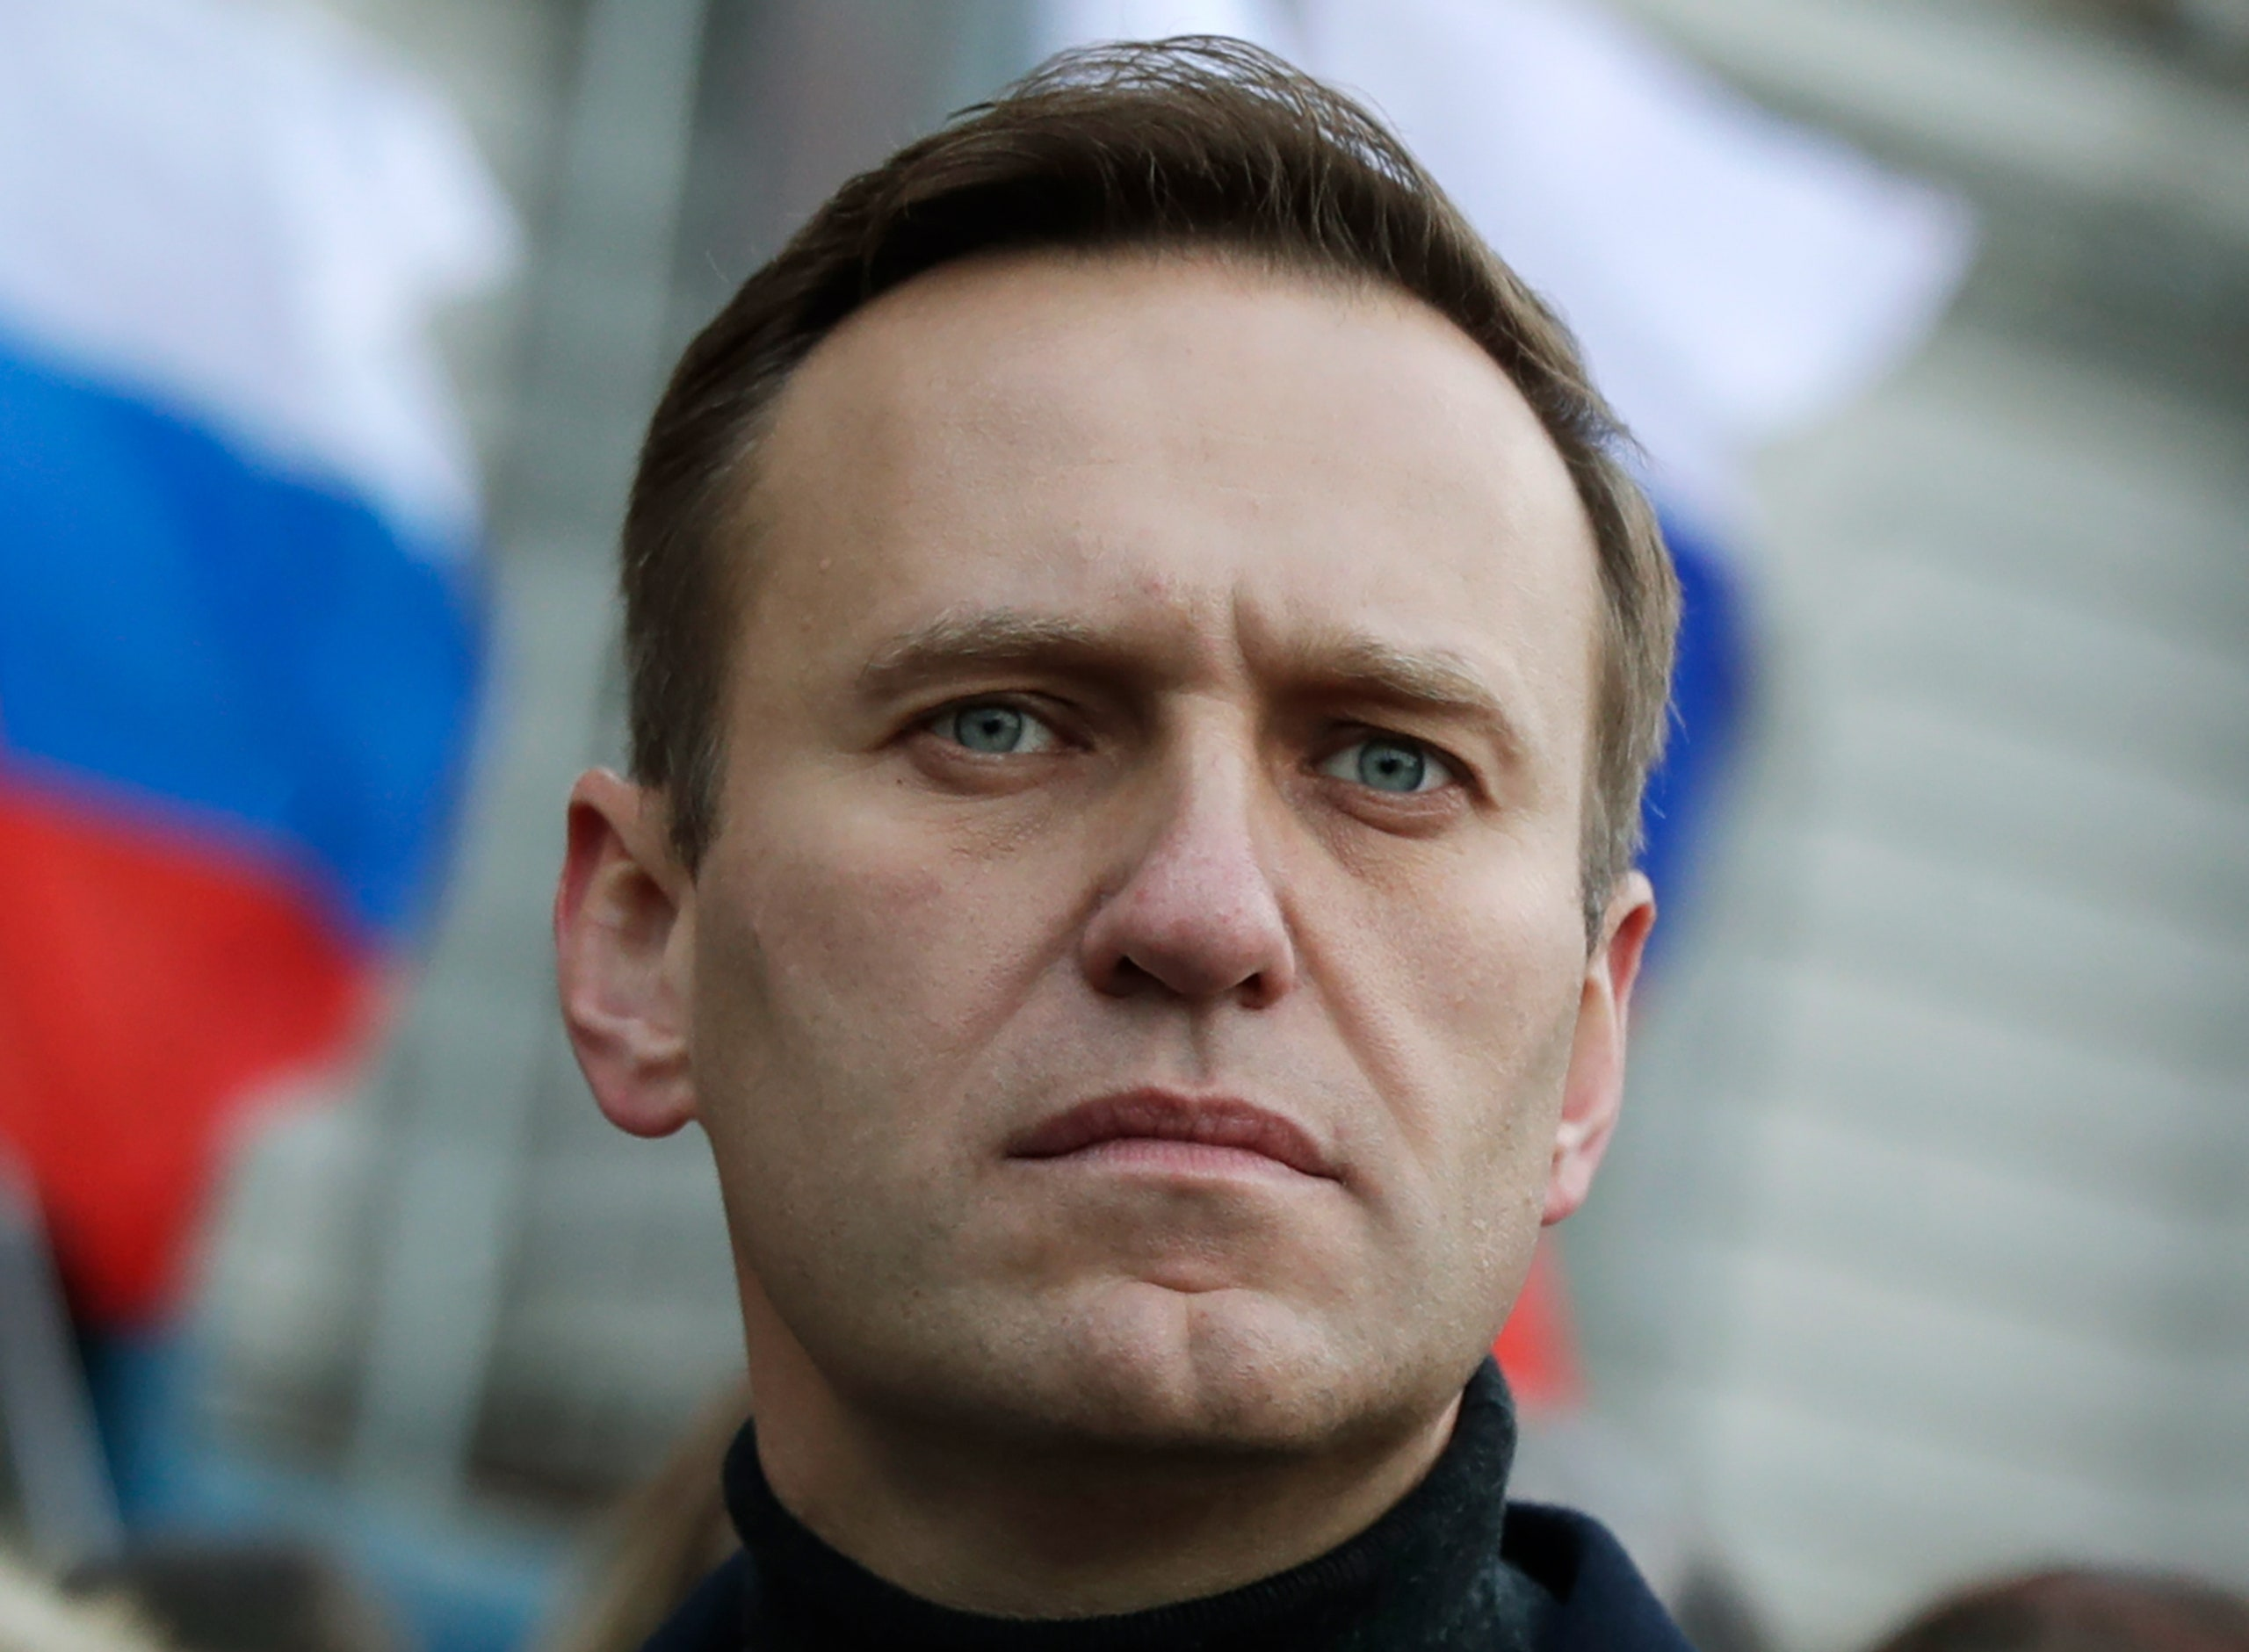 Navalny as a factor of discord between Russia and the West